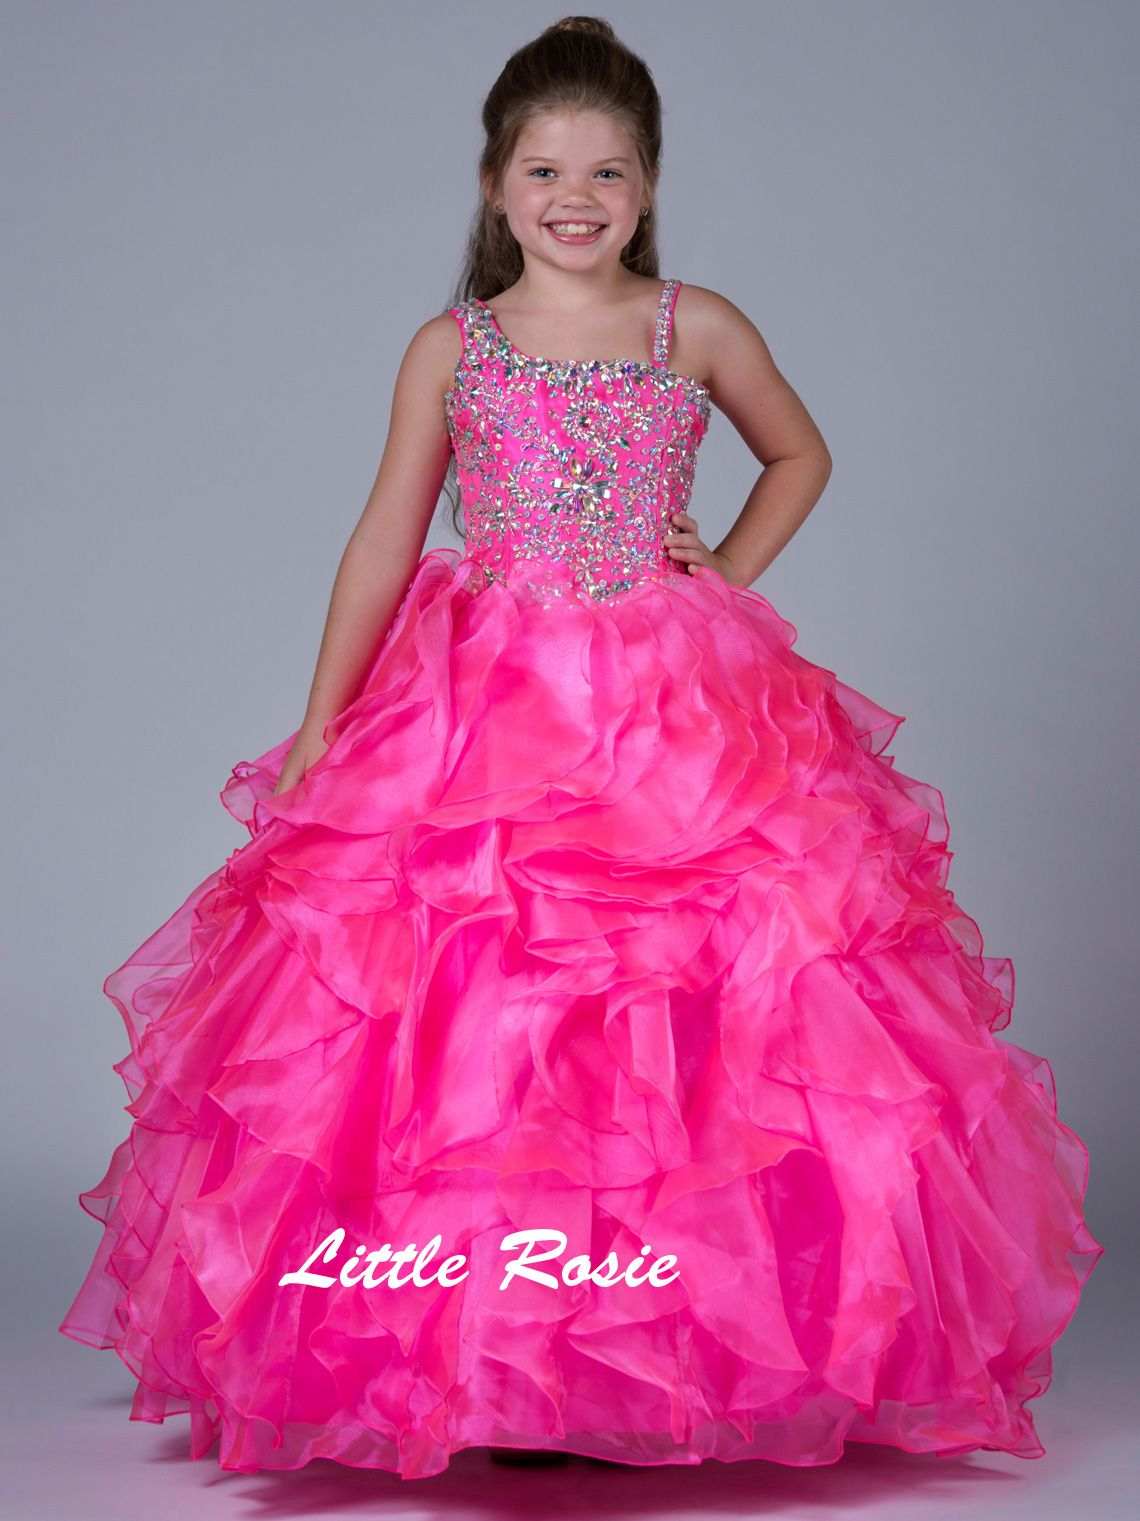 Little Rosie One Shoulder Pageant Dress LR2046|PageantDesigns.com ...